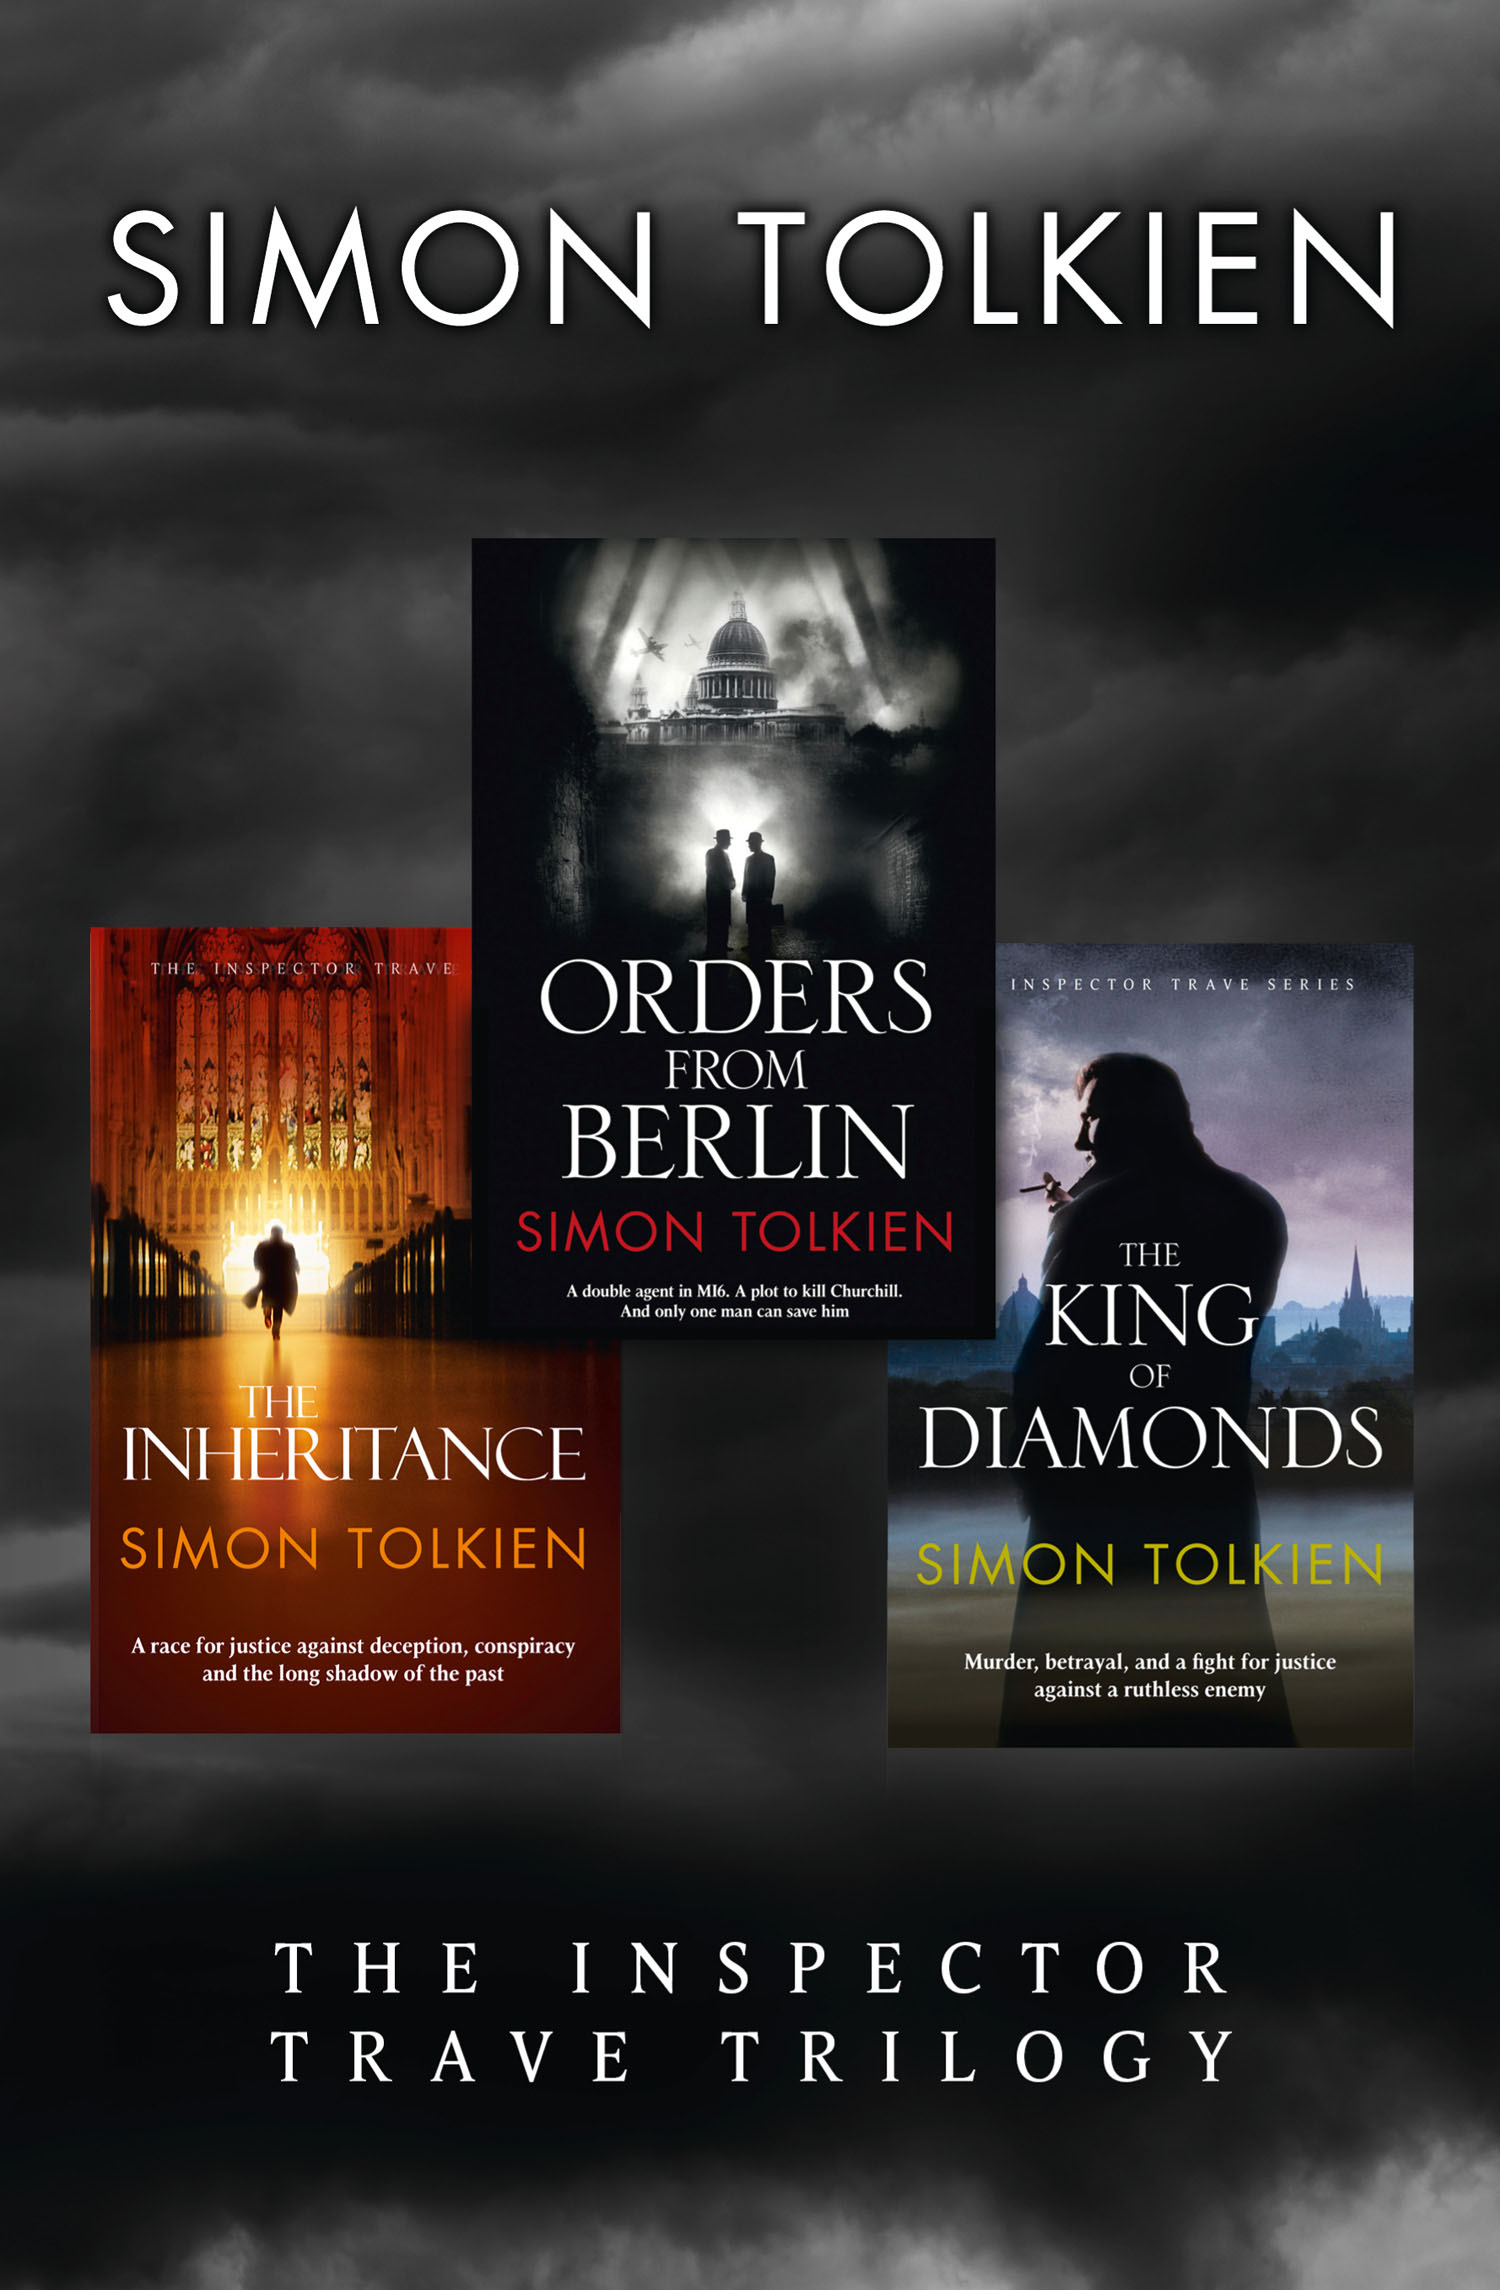 Simon Tolkien Inspector Trave Trilogy